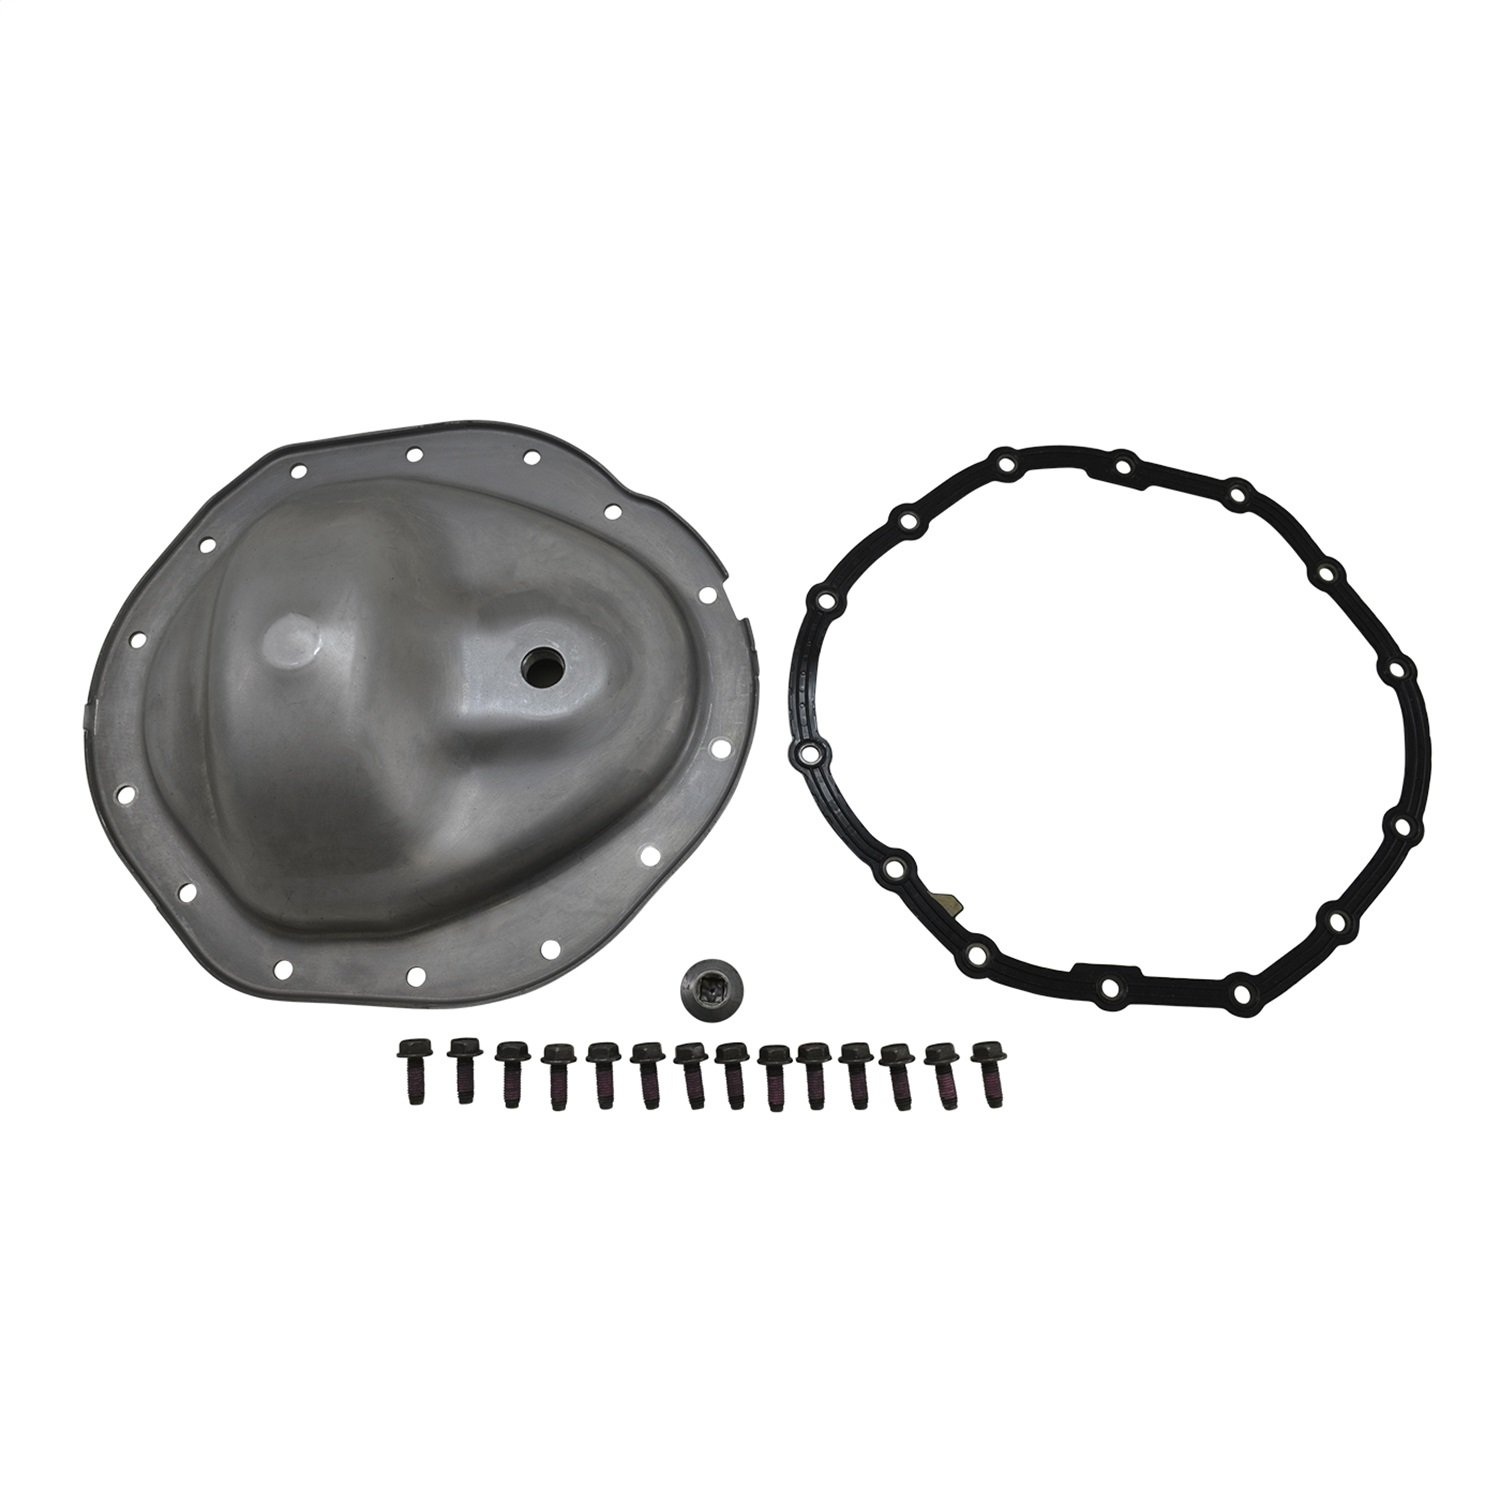 YP C5-C9.25-F Steel Cover for Chrysler 9.25 Front Differential Yukon Gear /& Axle